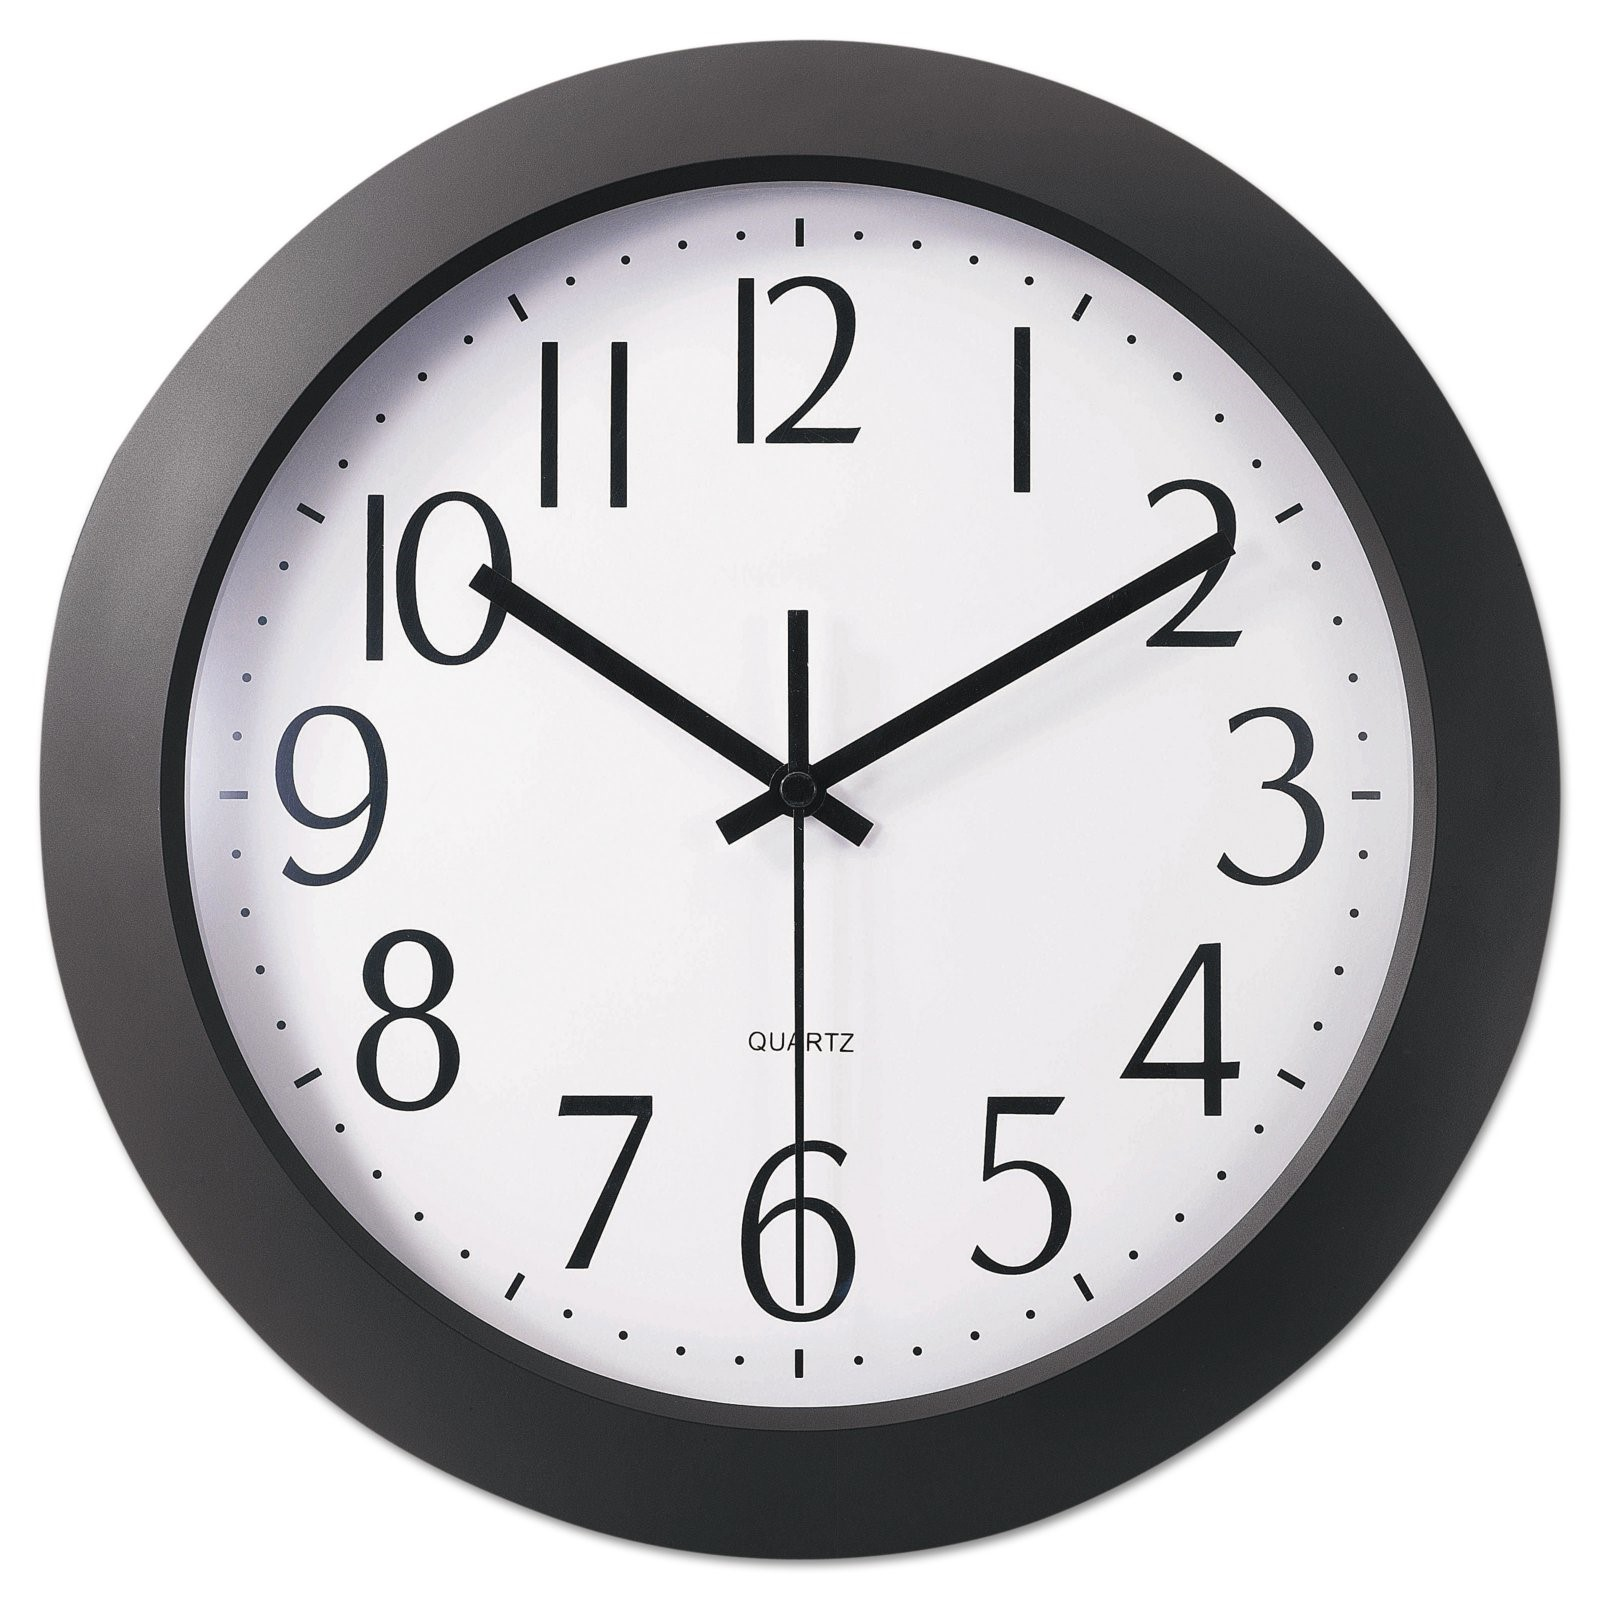 Universal Whisper Quiet 12 in. Wall Clock